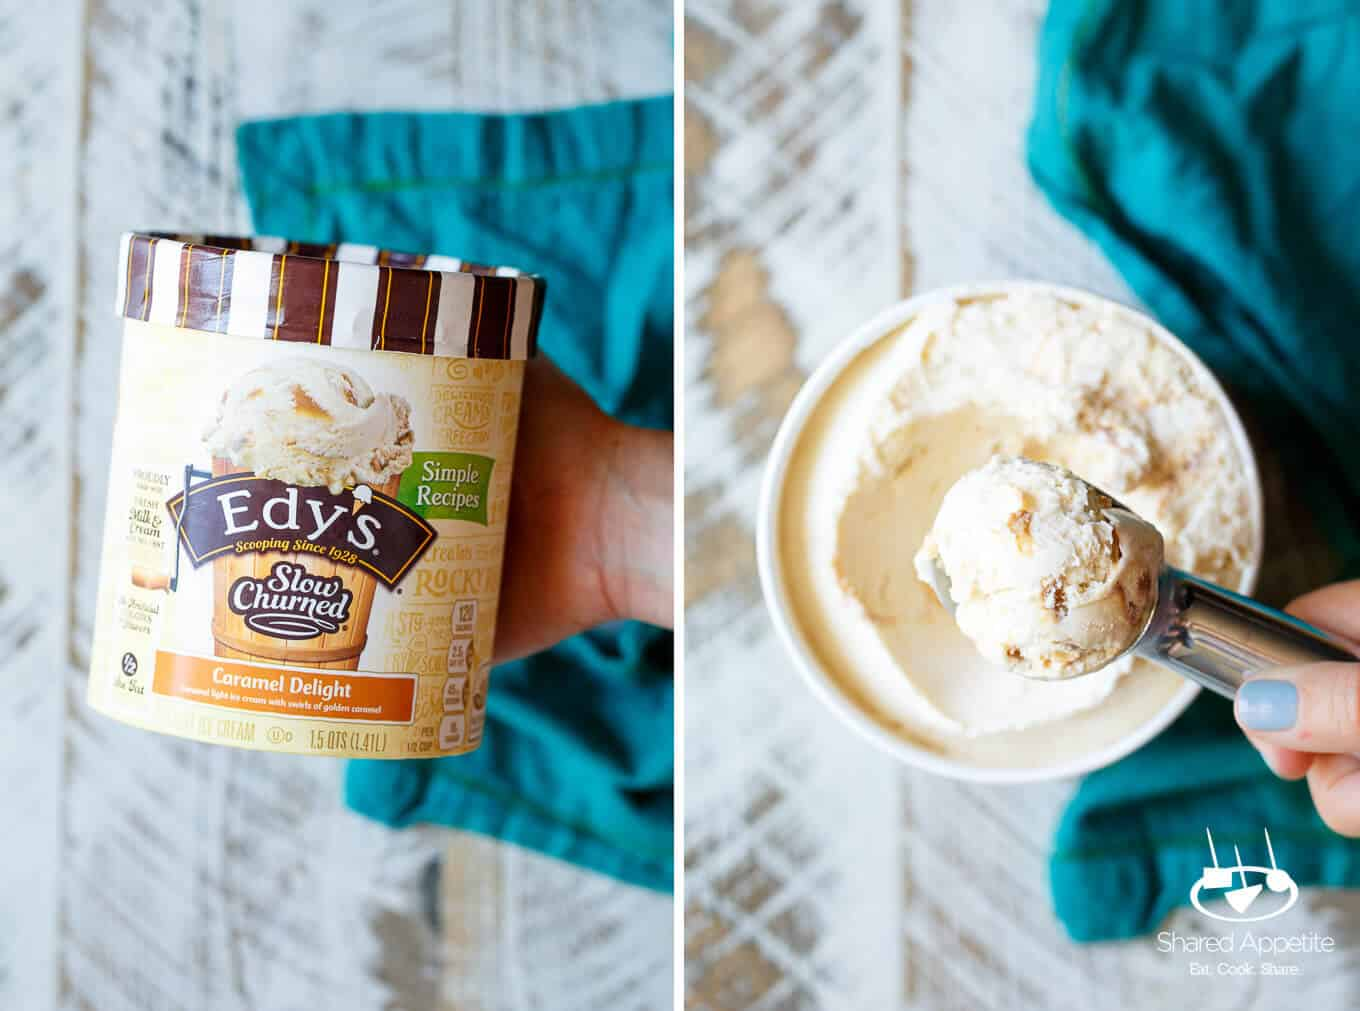 Mini Caramel Pretzel Ice Cream Trifles with Brownie made with Edy's Slow Churned Ice Cream | sharedappetite.com